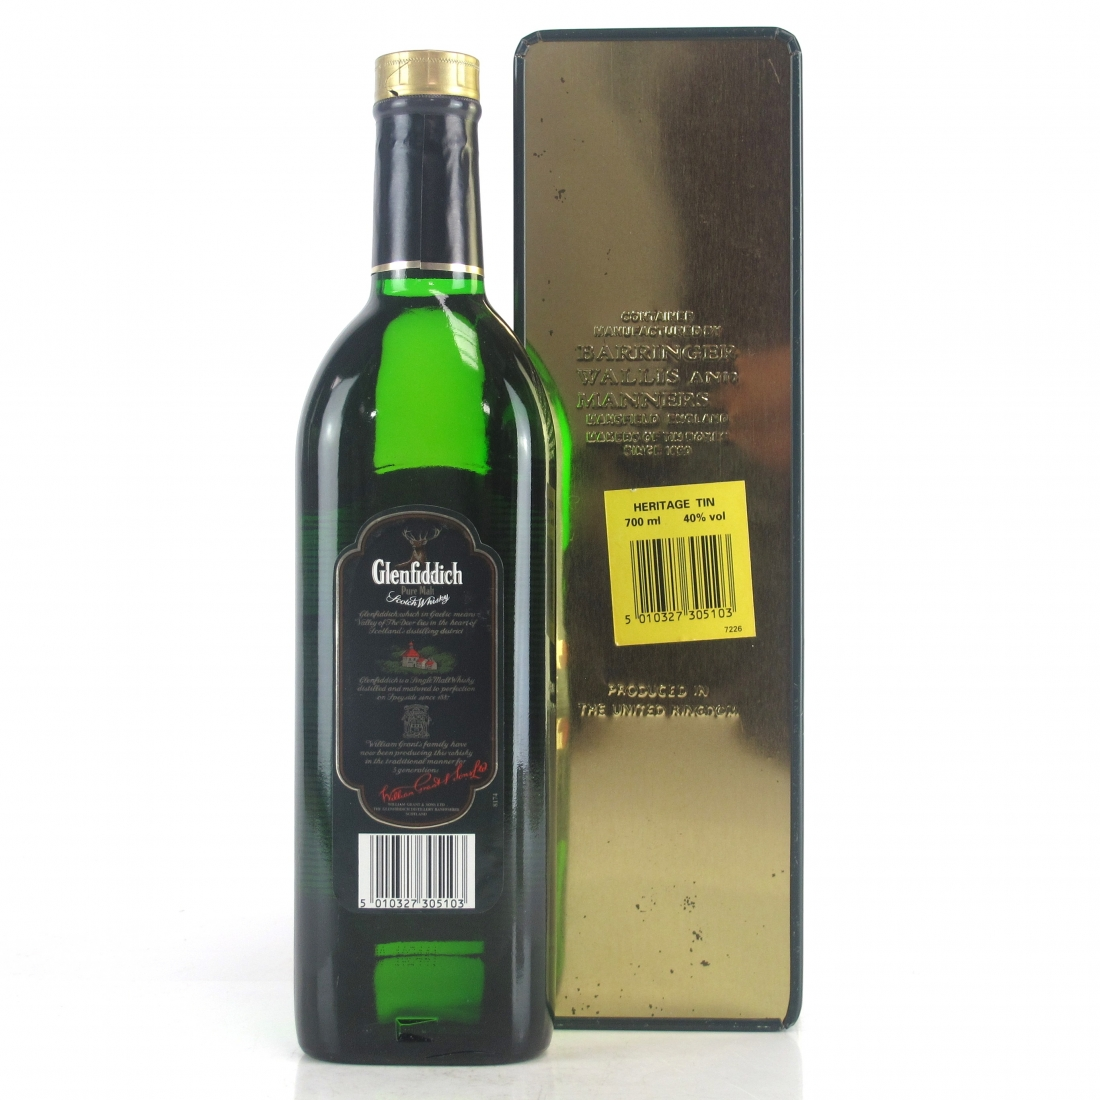 Glenfiddich Clans of the Highlands / House of Stewart